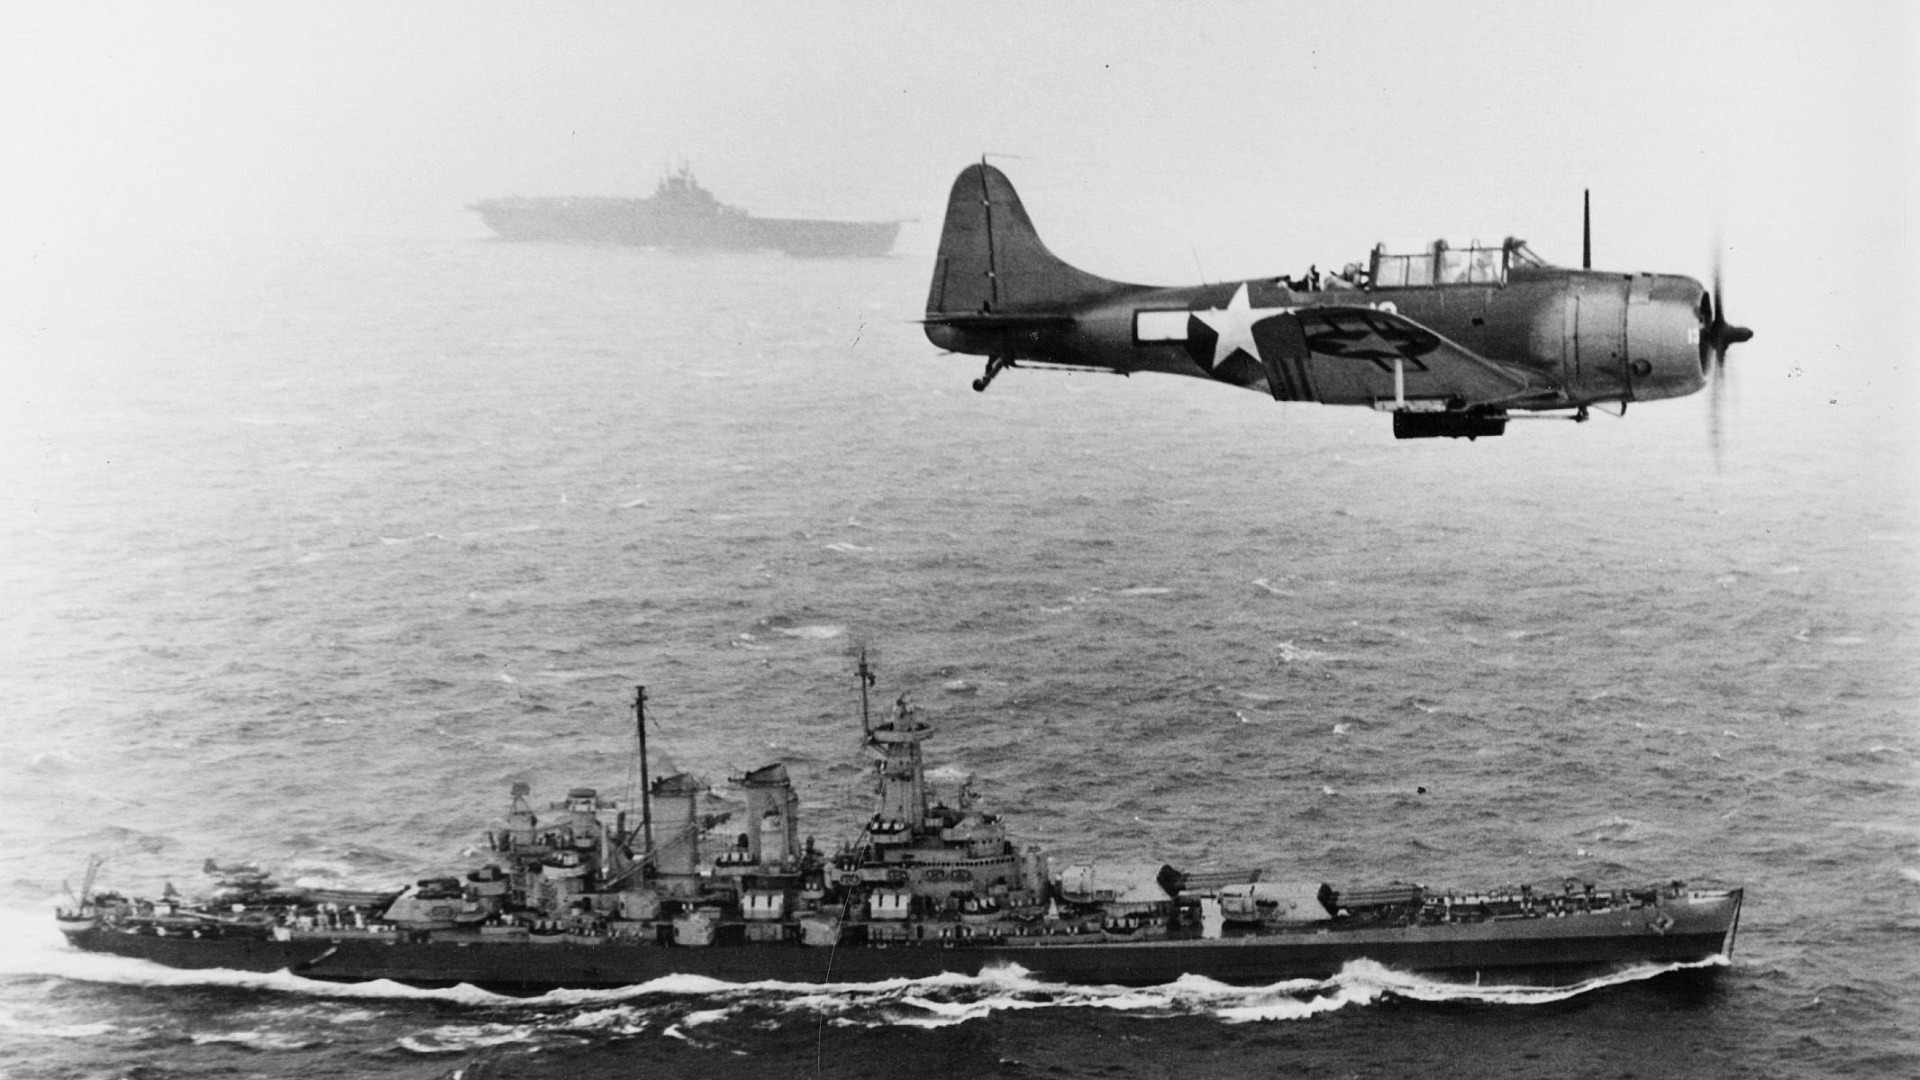 the different battles fought over the pacific ocean